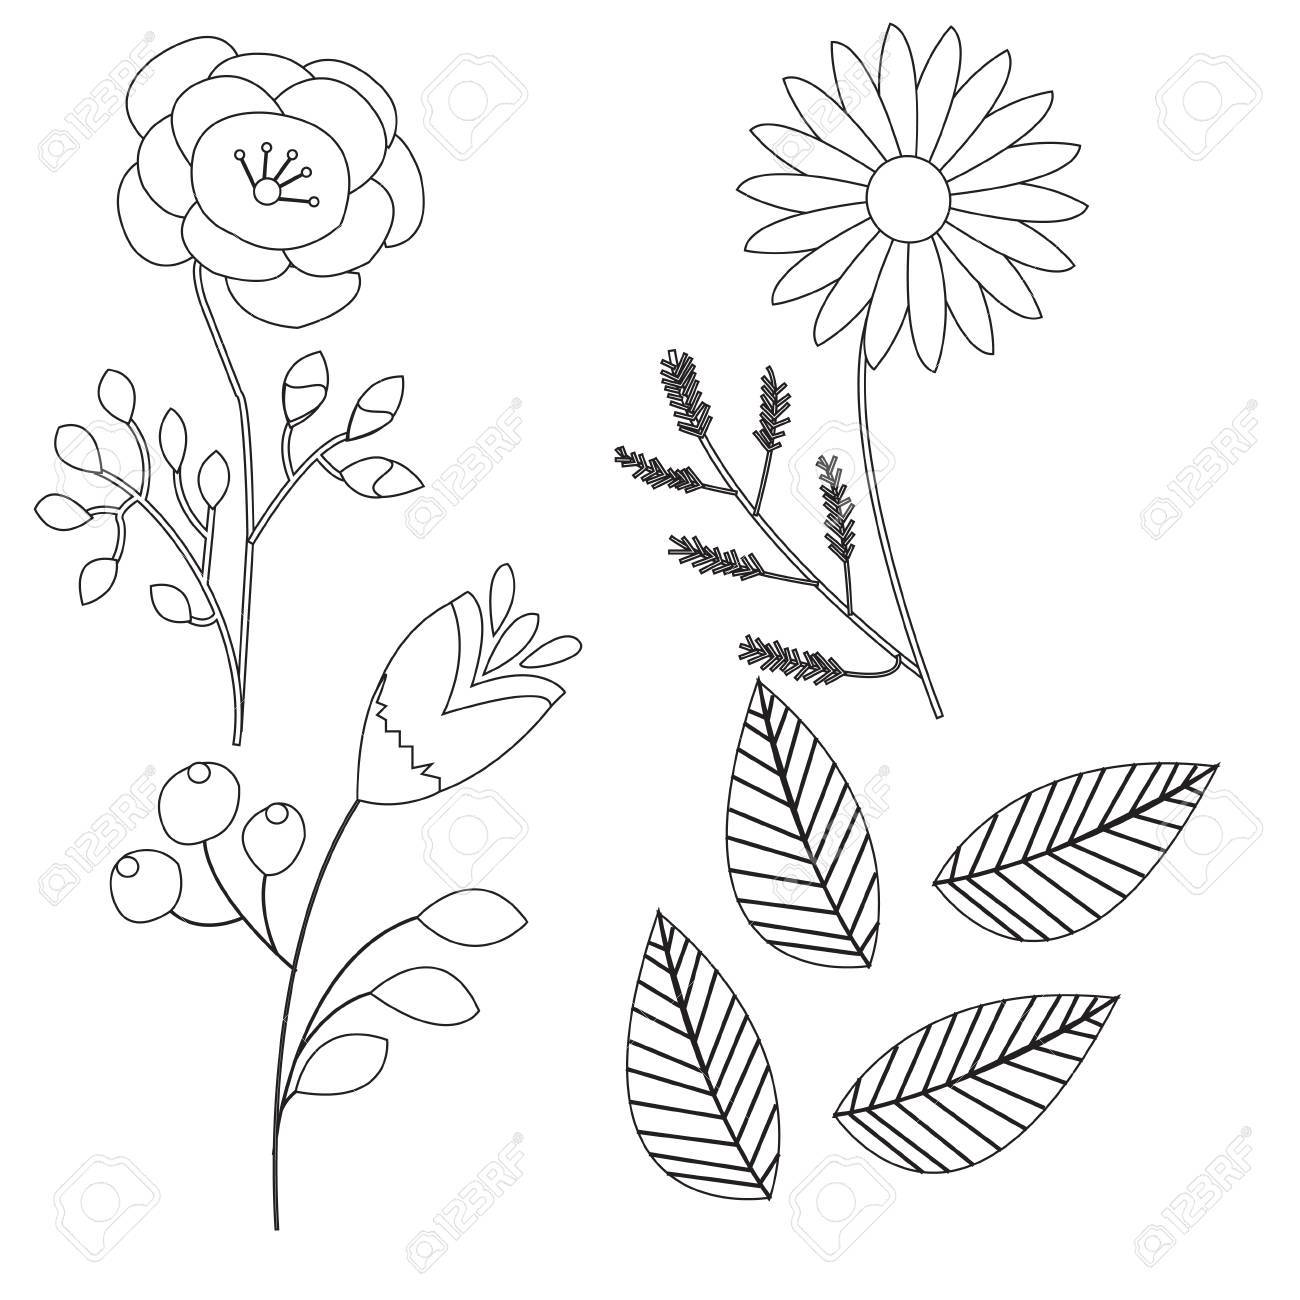 Set Doodle Drawn Flowers Isolated On White Background For Design